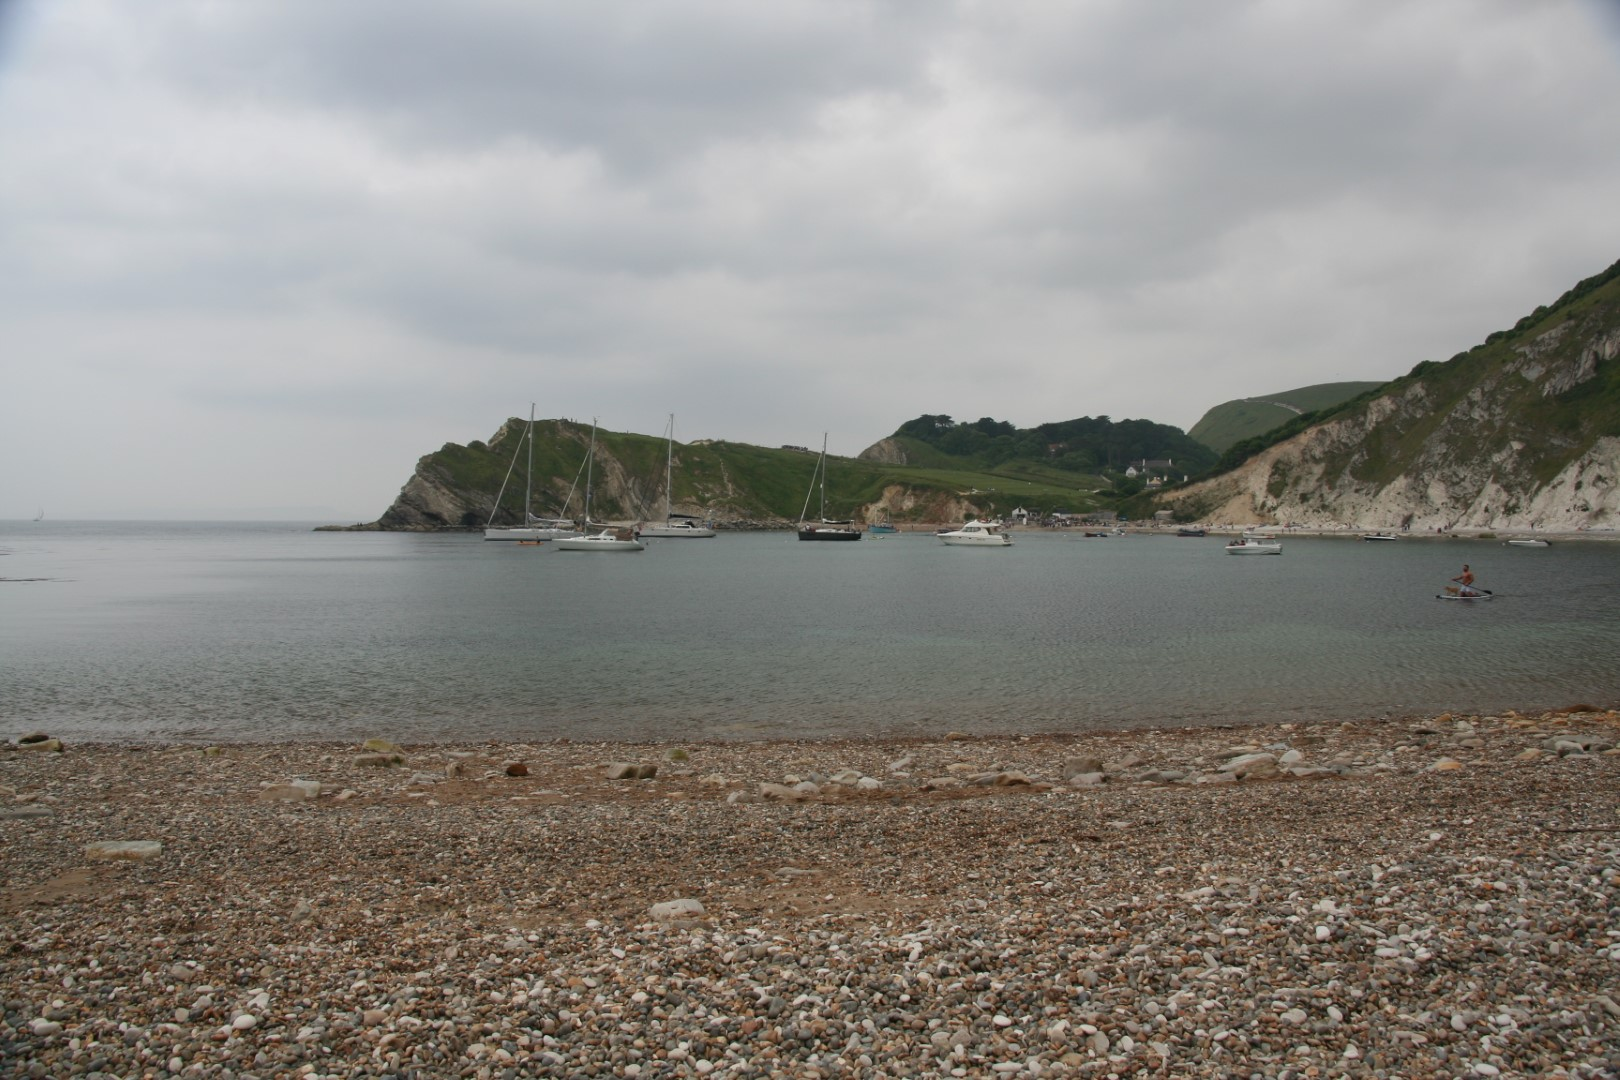 Lulworth Cove beach - not as sandy as you would hope.